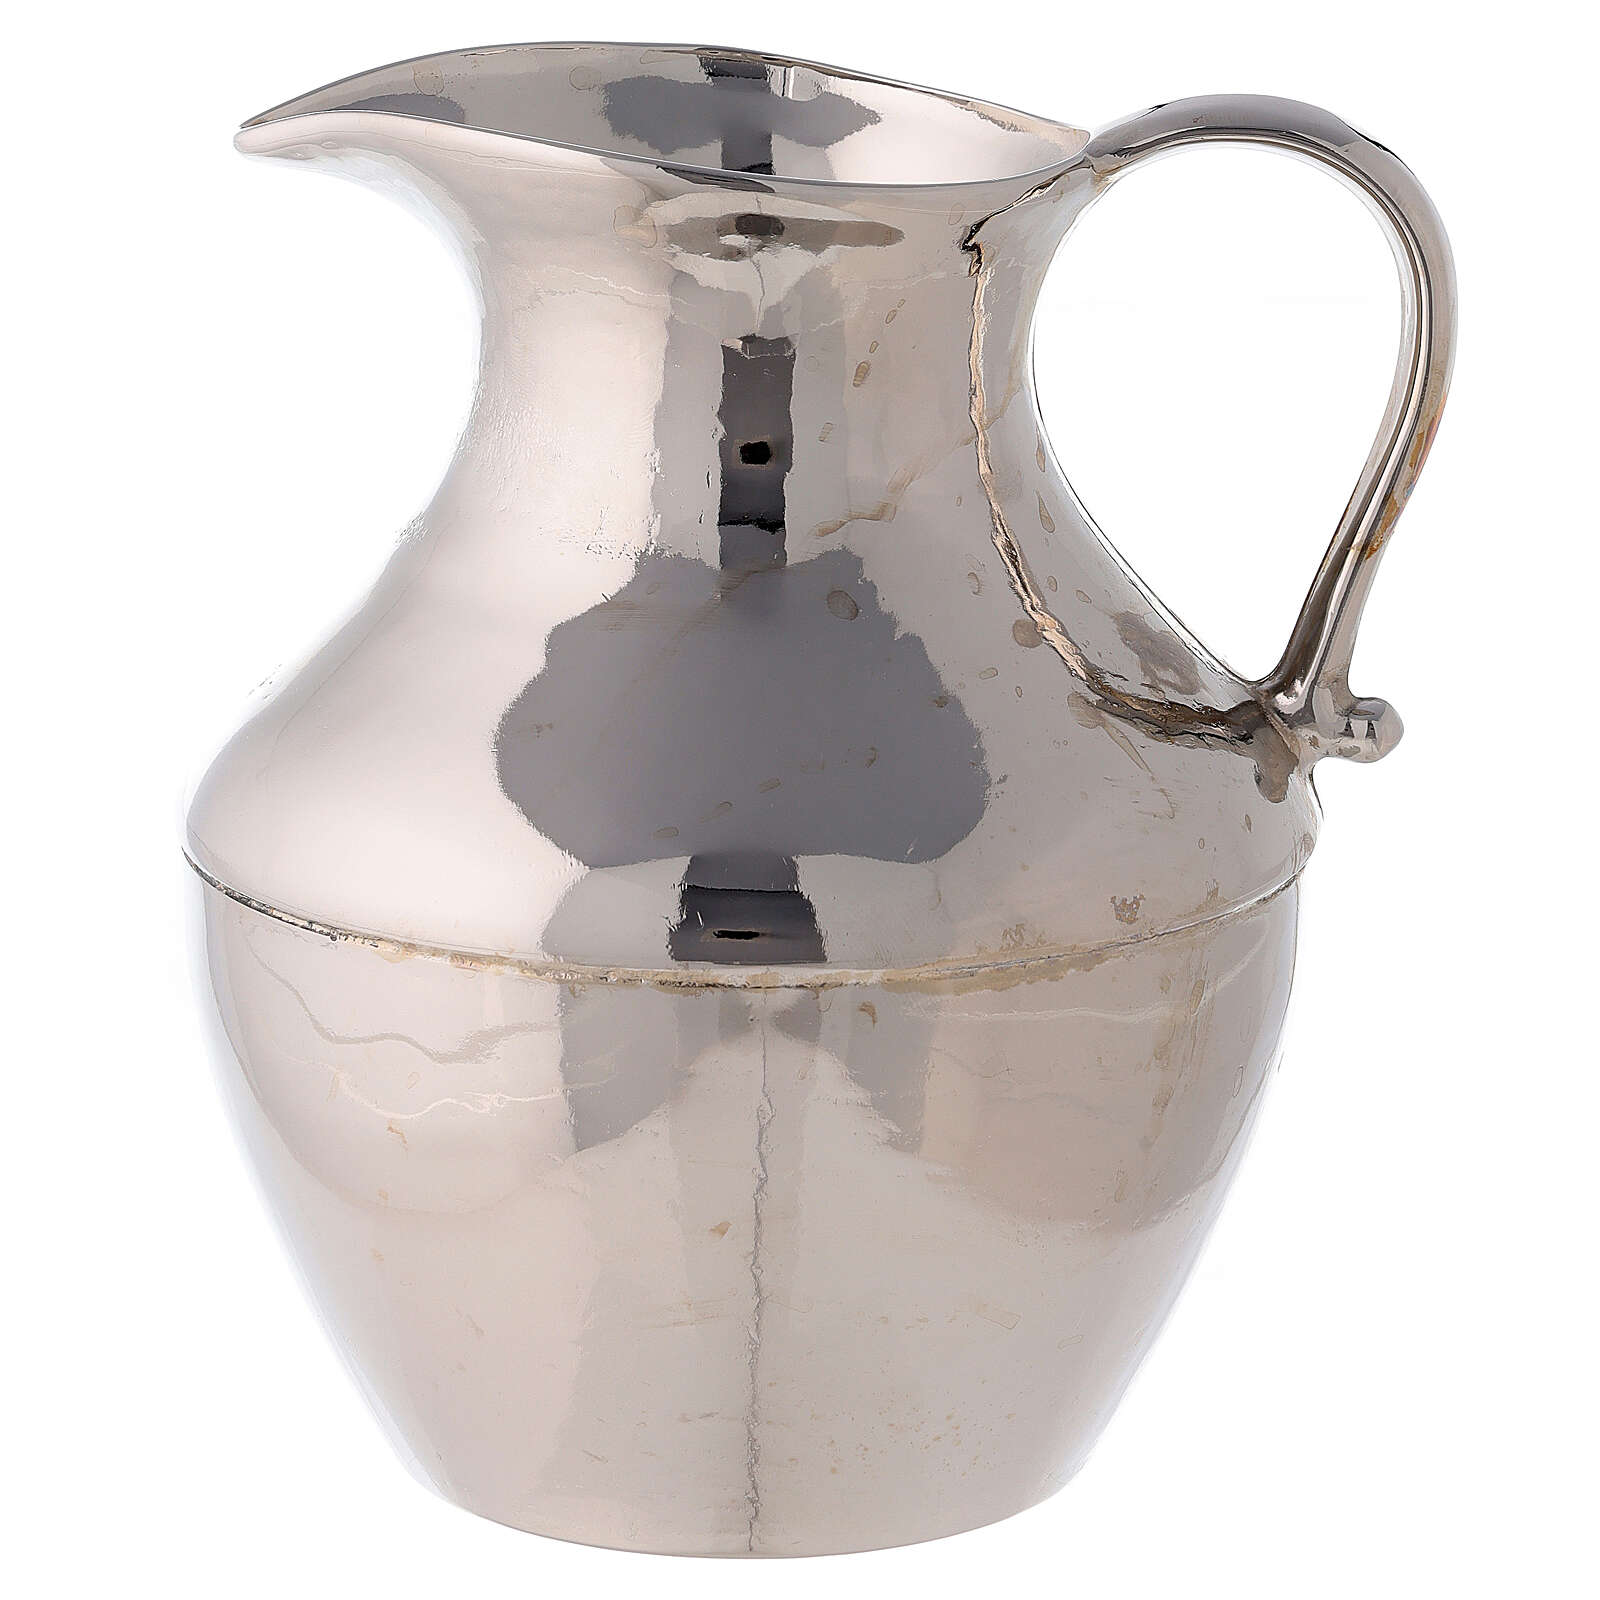 Polished nickel-plated brass ewer and basin 3